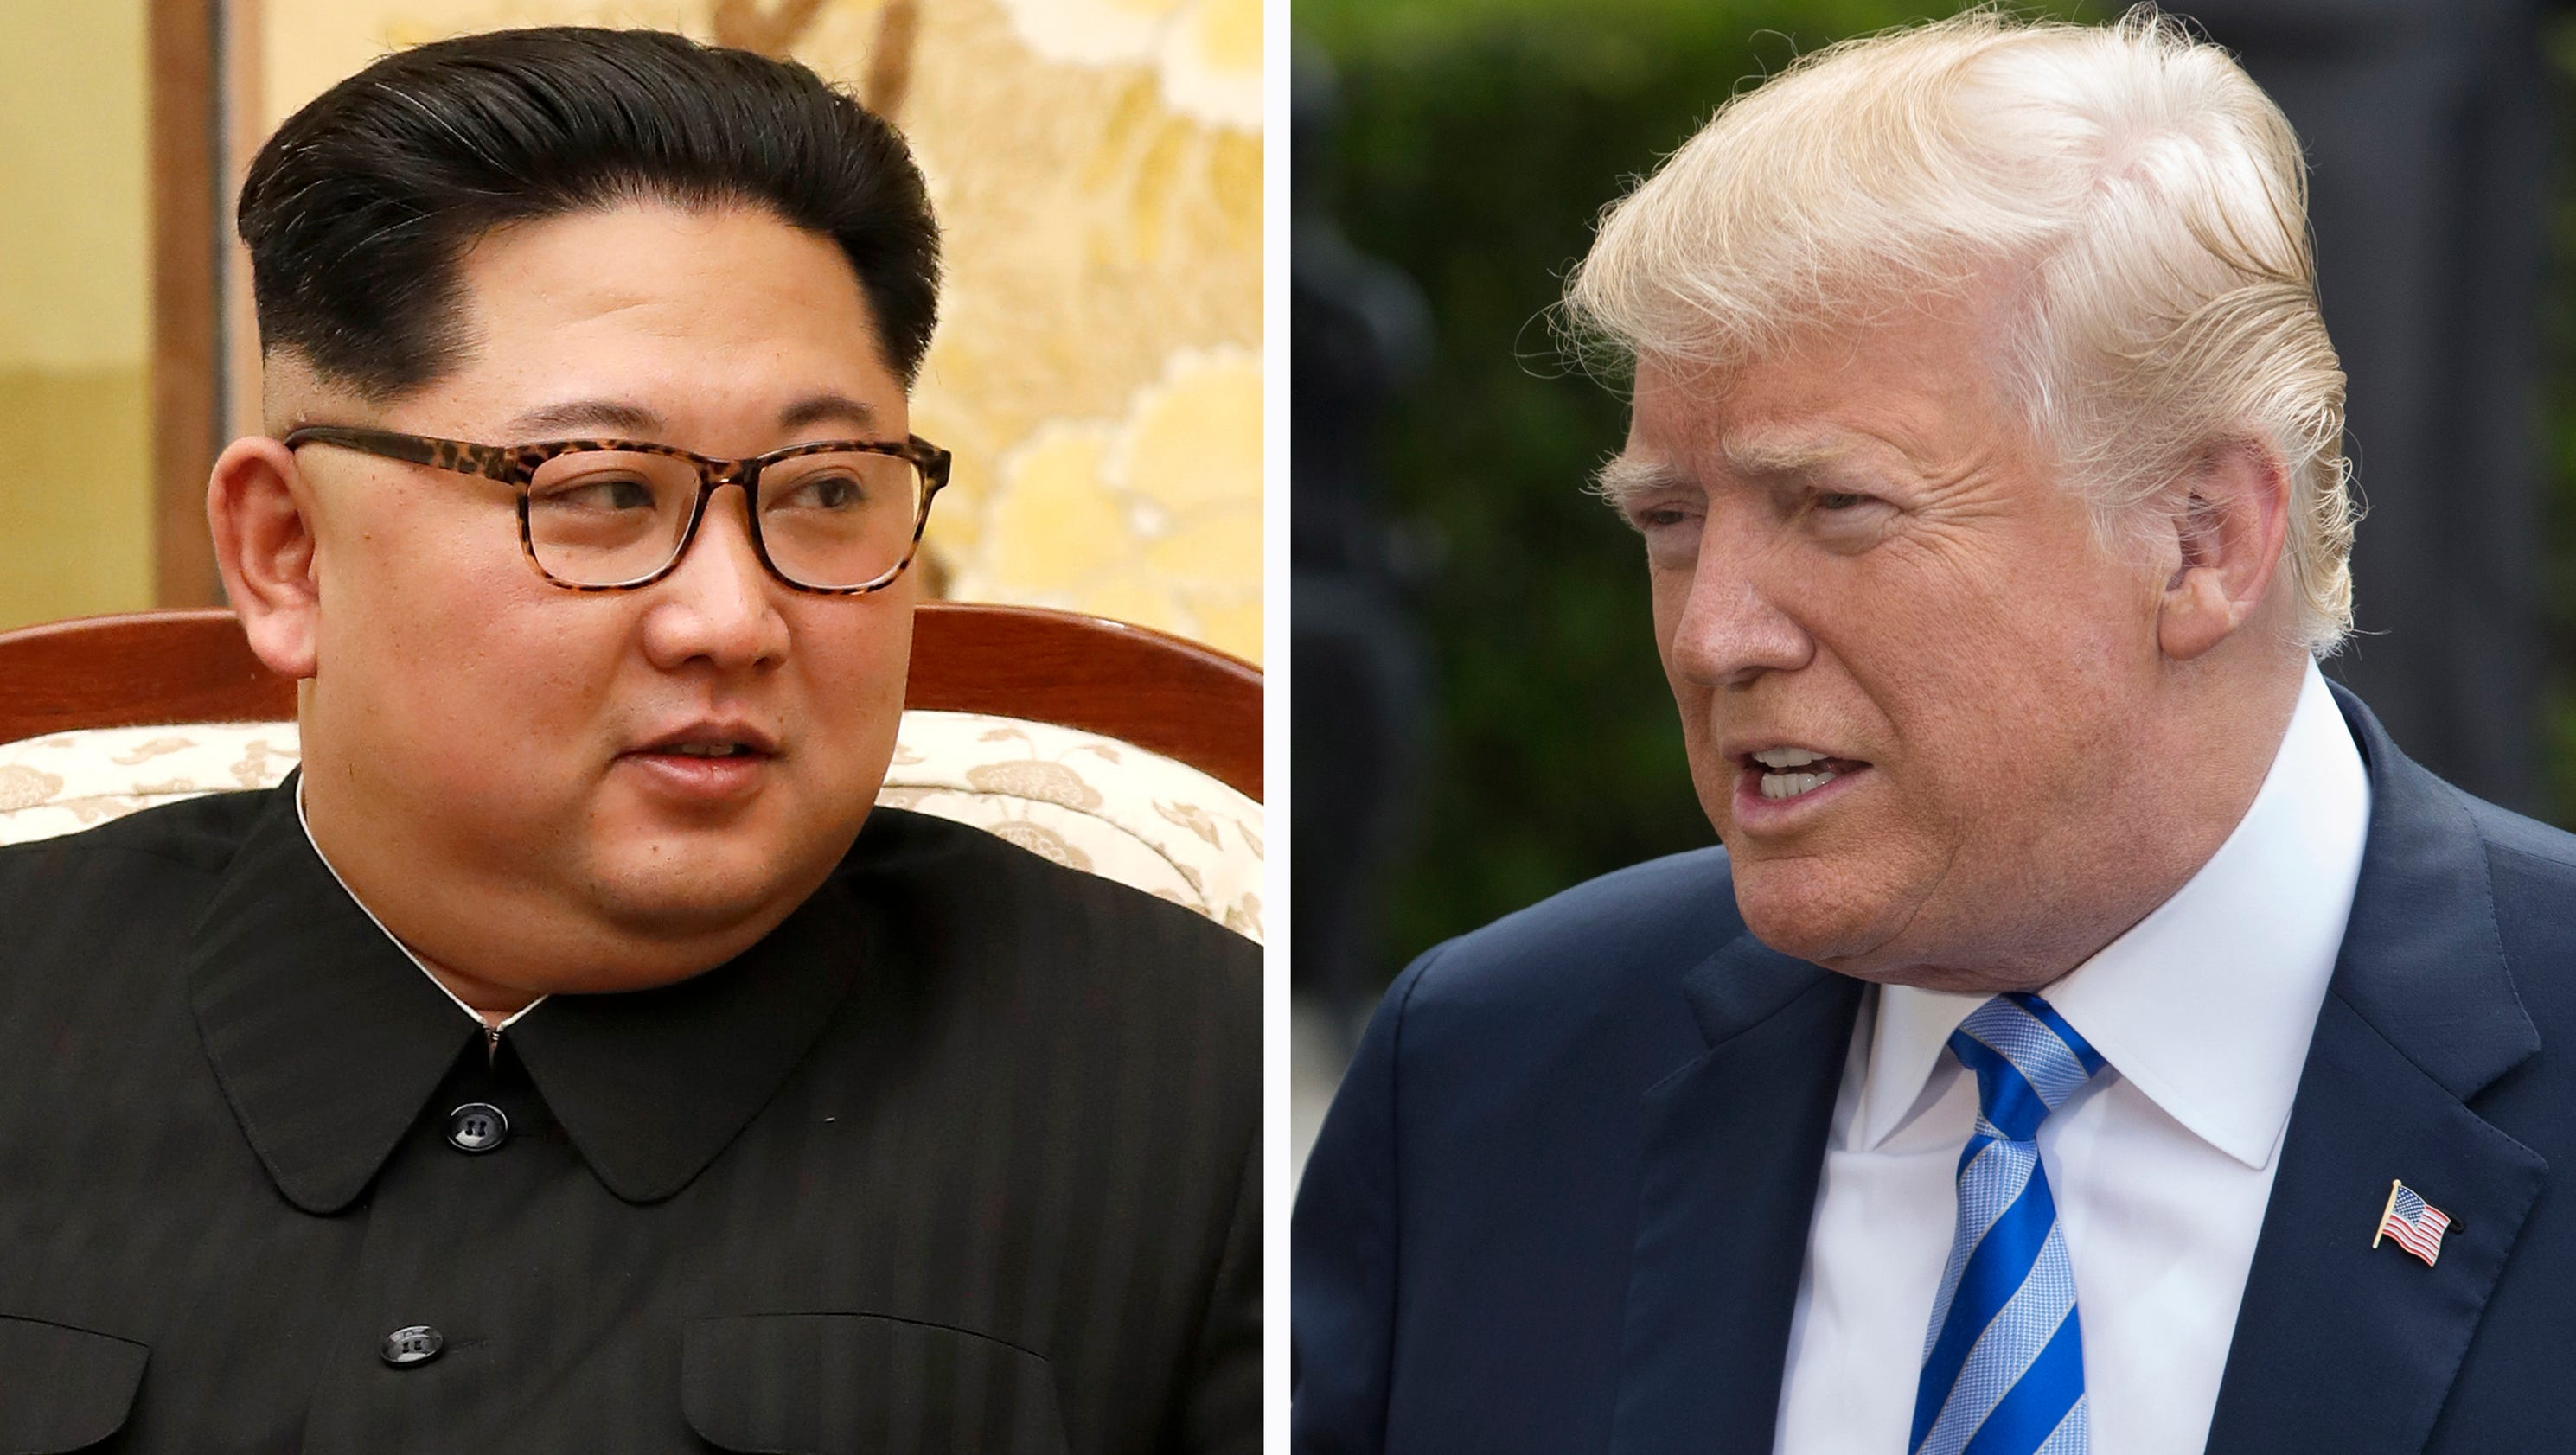 North Korea threatens to cancel Trump meeting over nuclear question